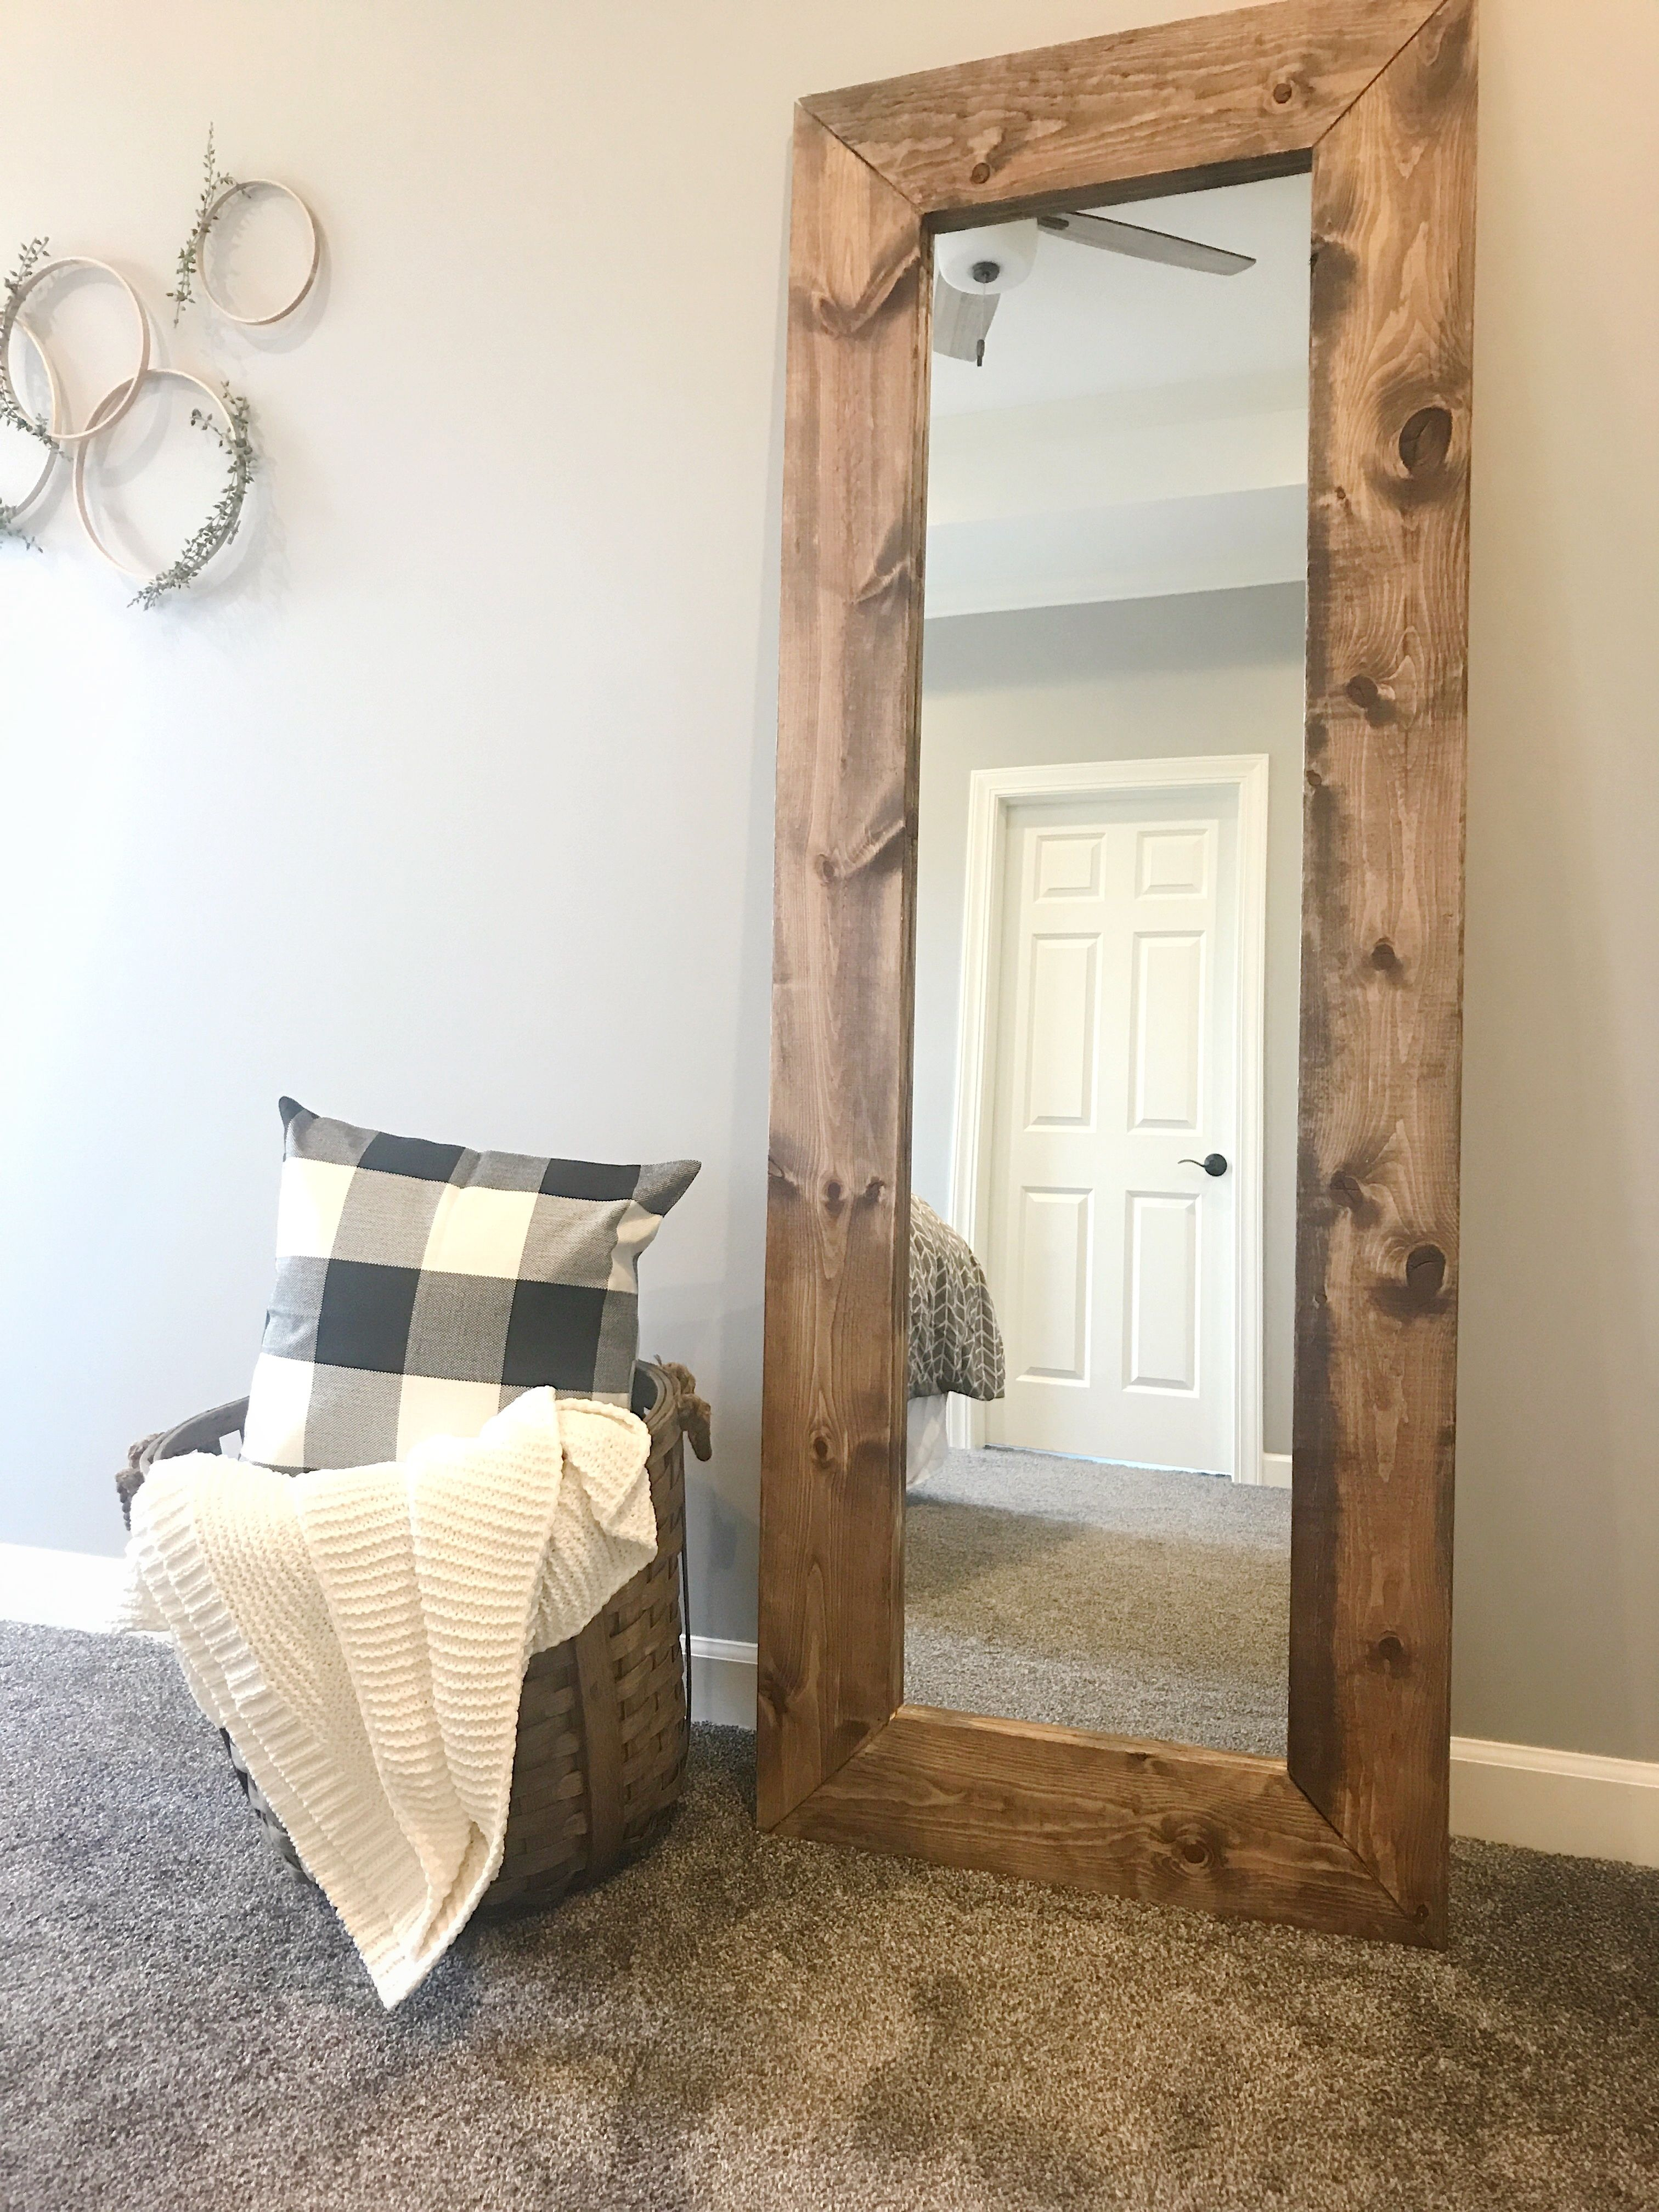 How To Build A Diy Wood Mirror Frame The Holtz House Diy Wood Mirror Frame Mirror Frame Diy Wooden Mirror Frame